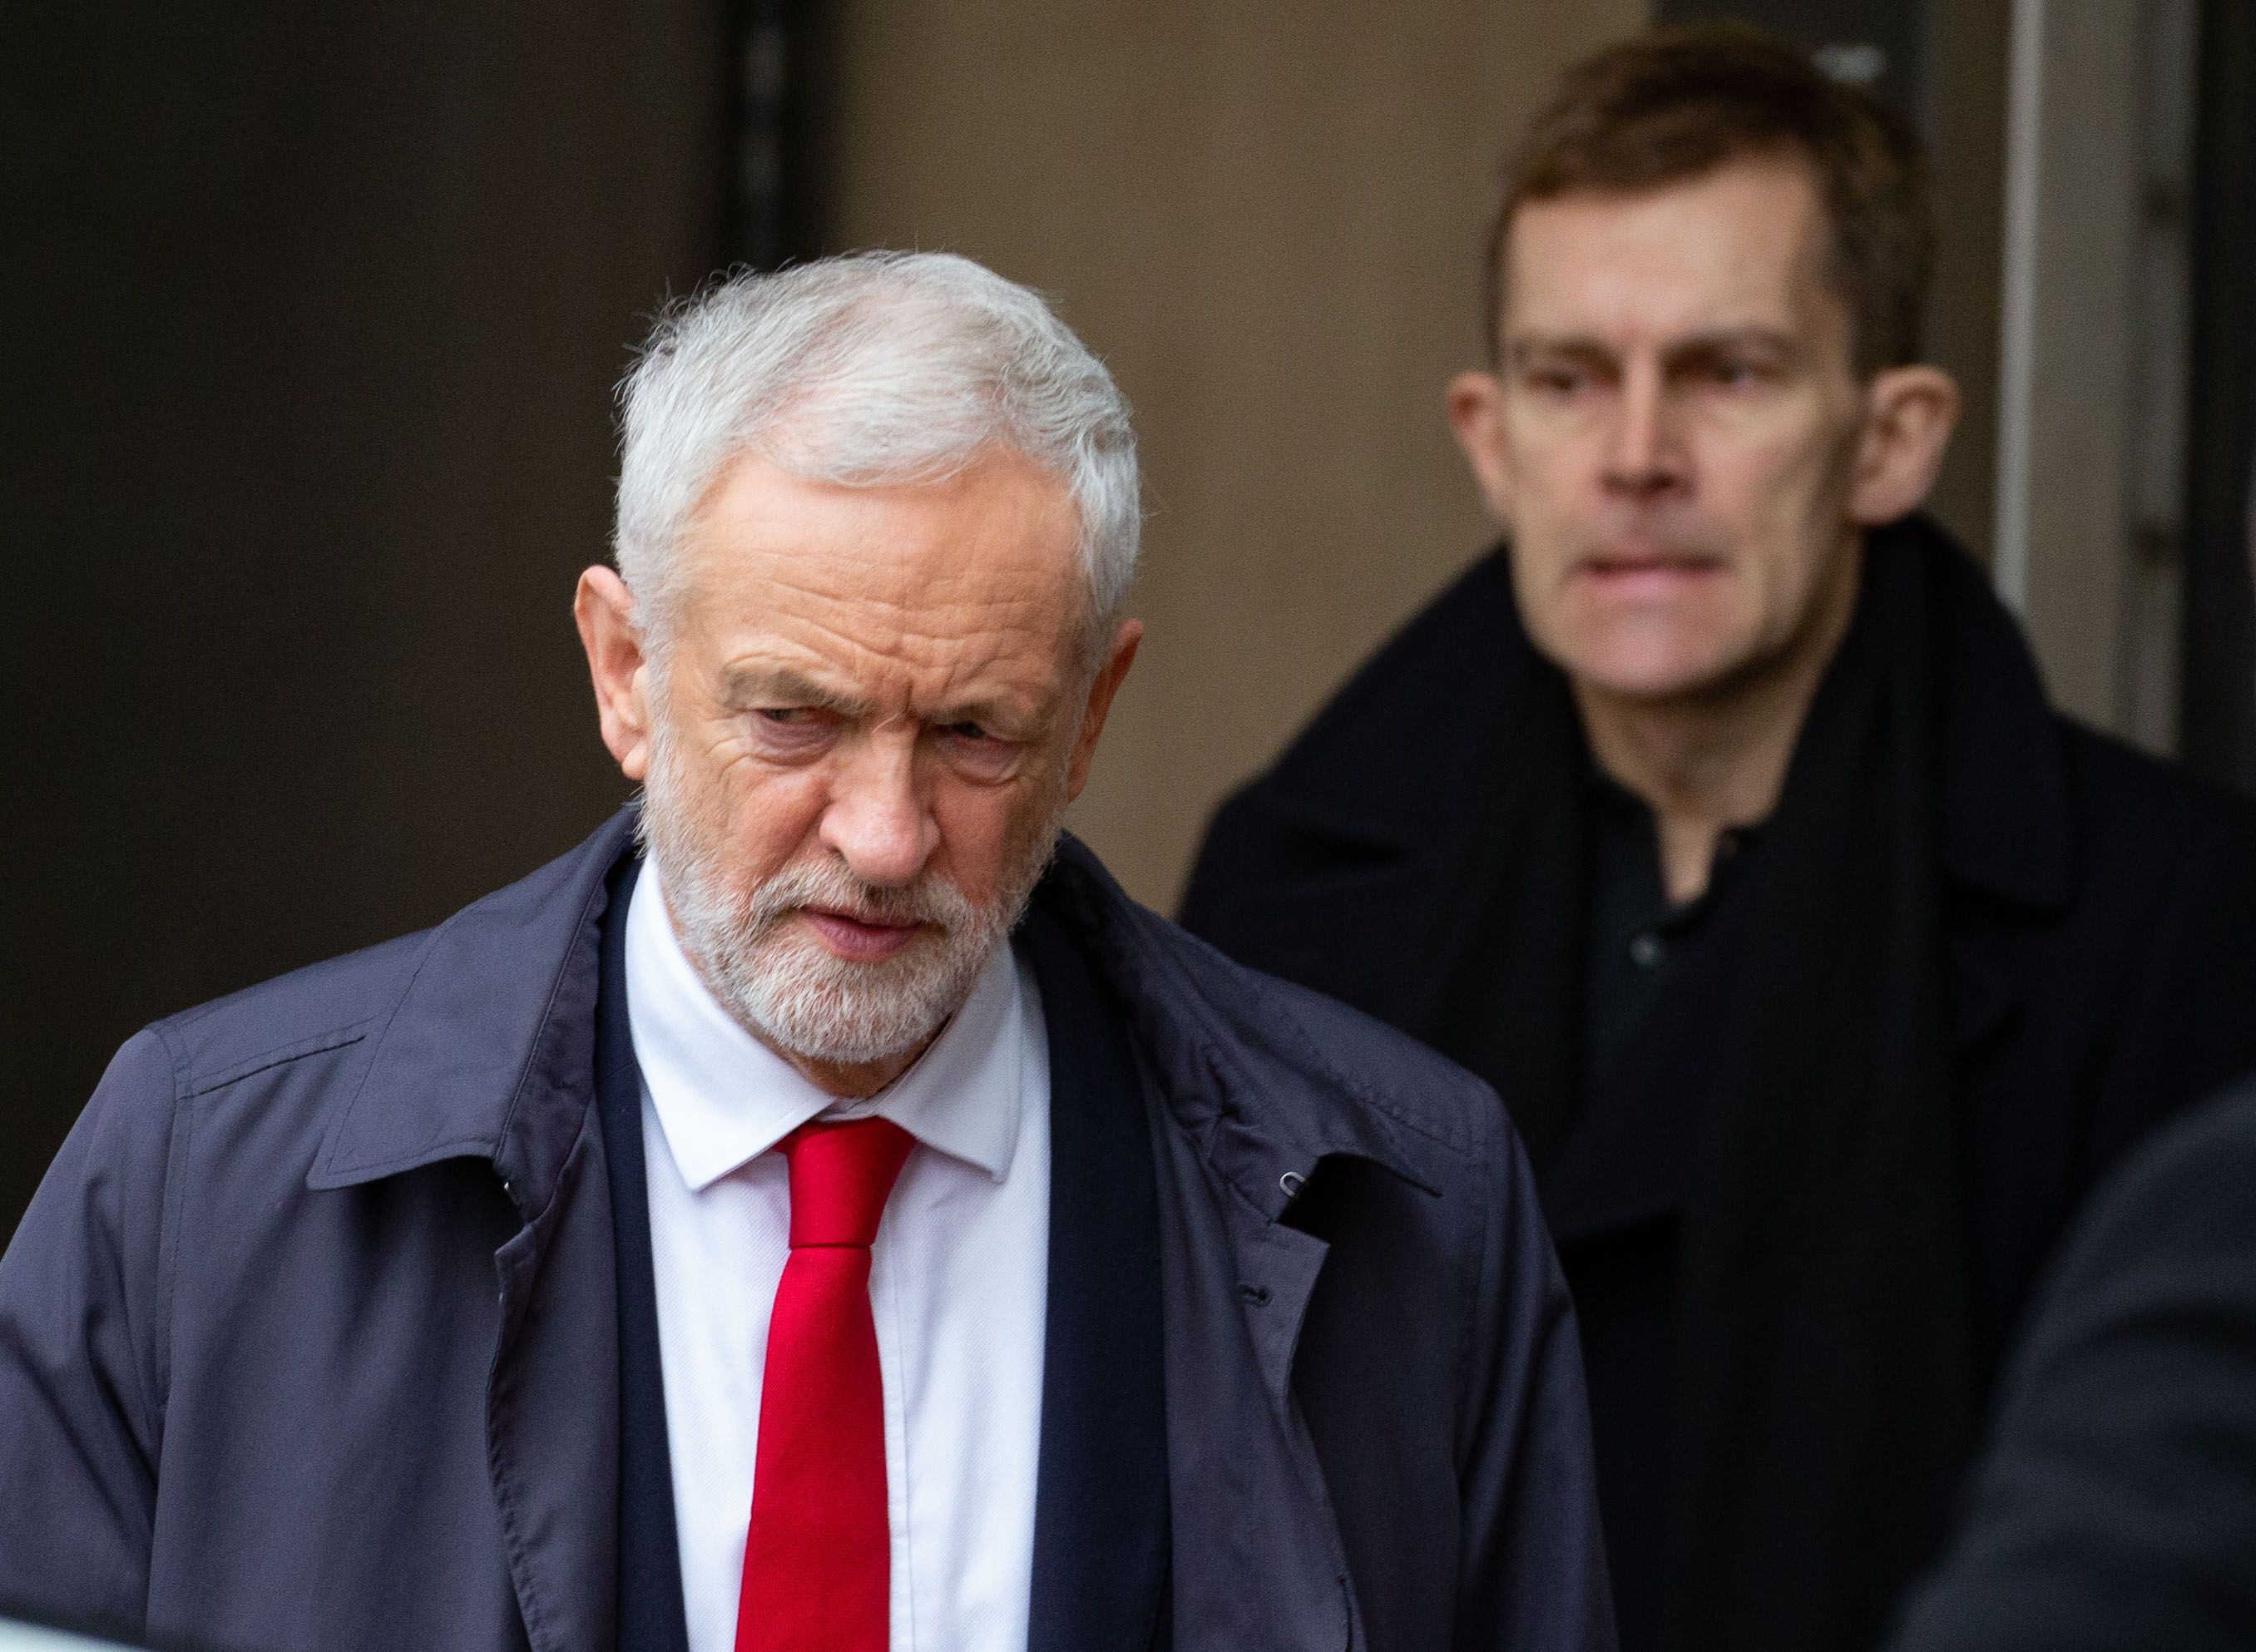 Leader of the Labour Party, Jeremy Corbyn, leaves the BBC Studios after appearing on The Andrew Marr Television Show on Jan. 13, 2019.